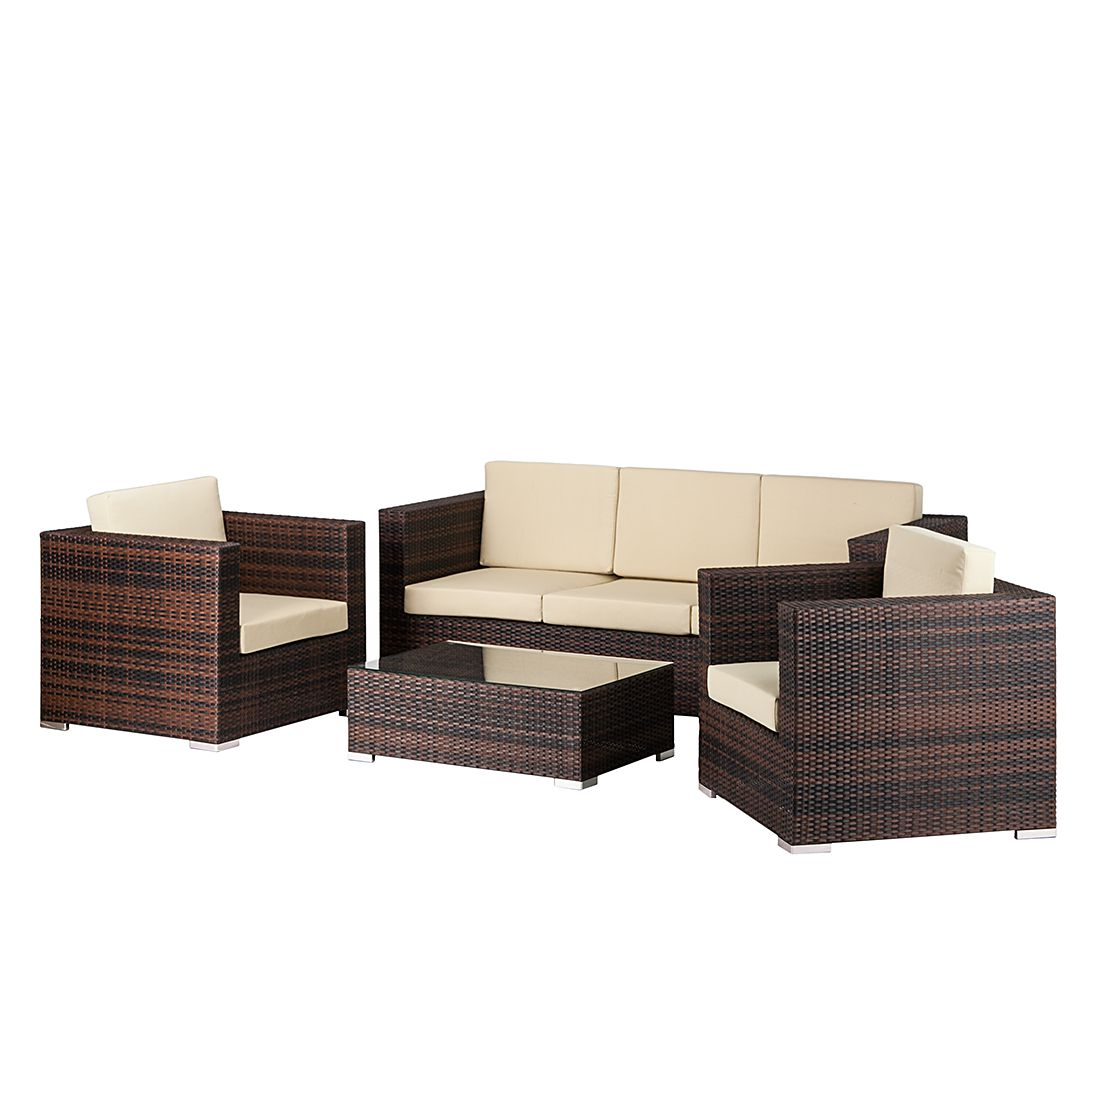 Loungeset garden kopen online internetwinkel - In december o grijze lounge ...